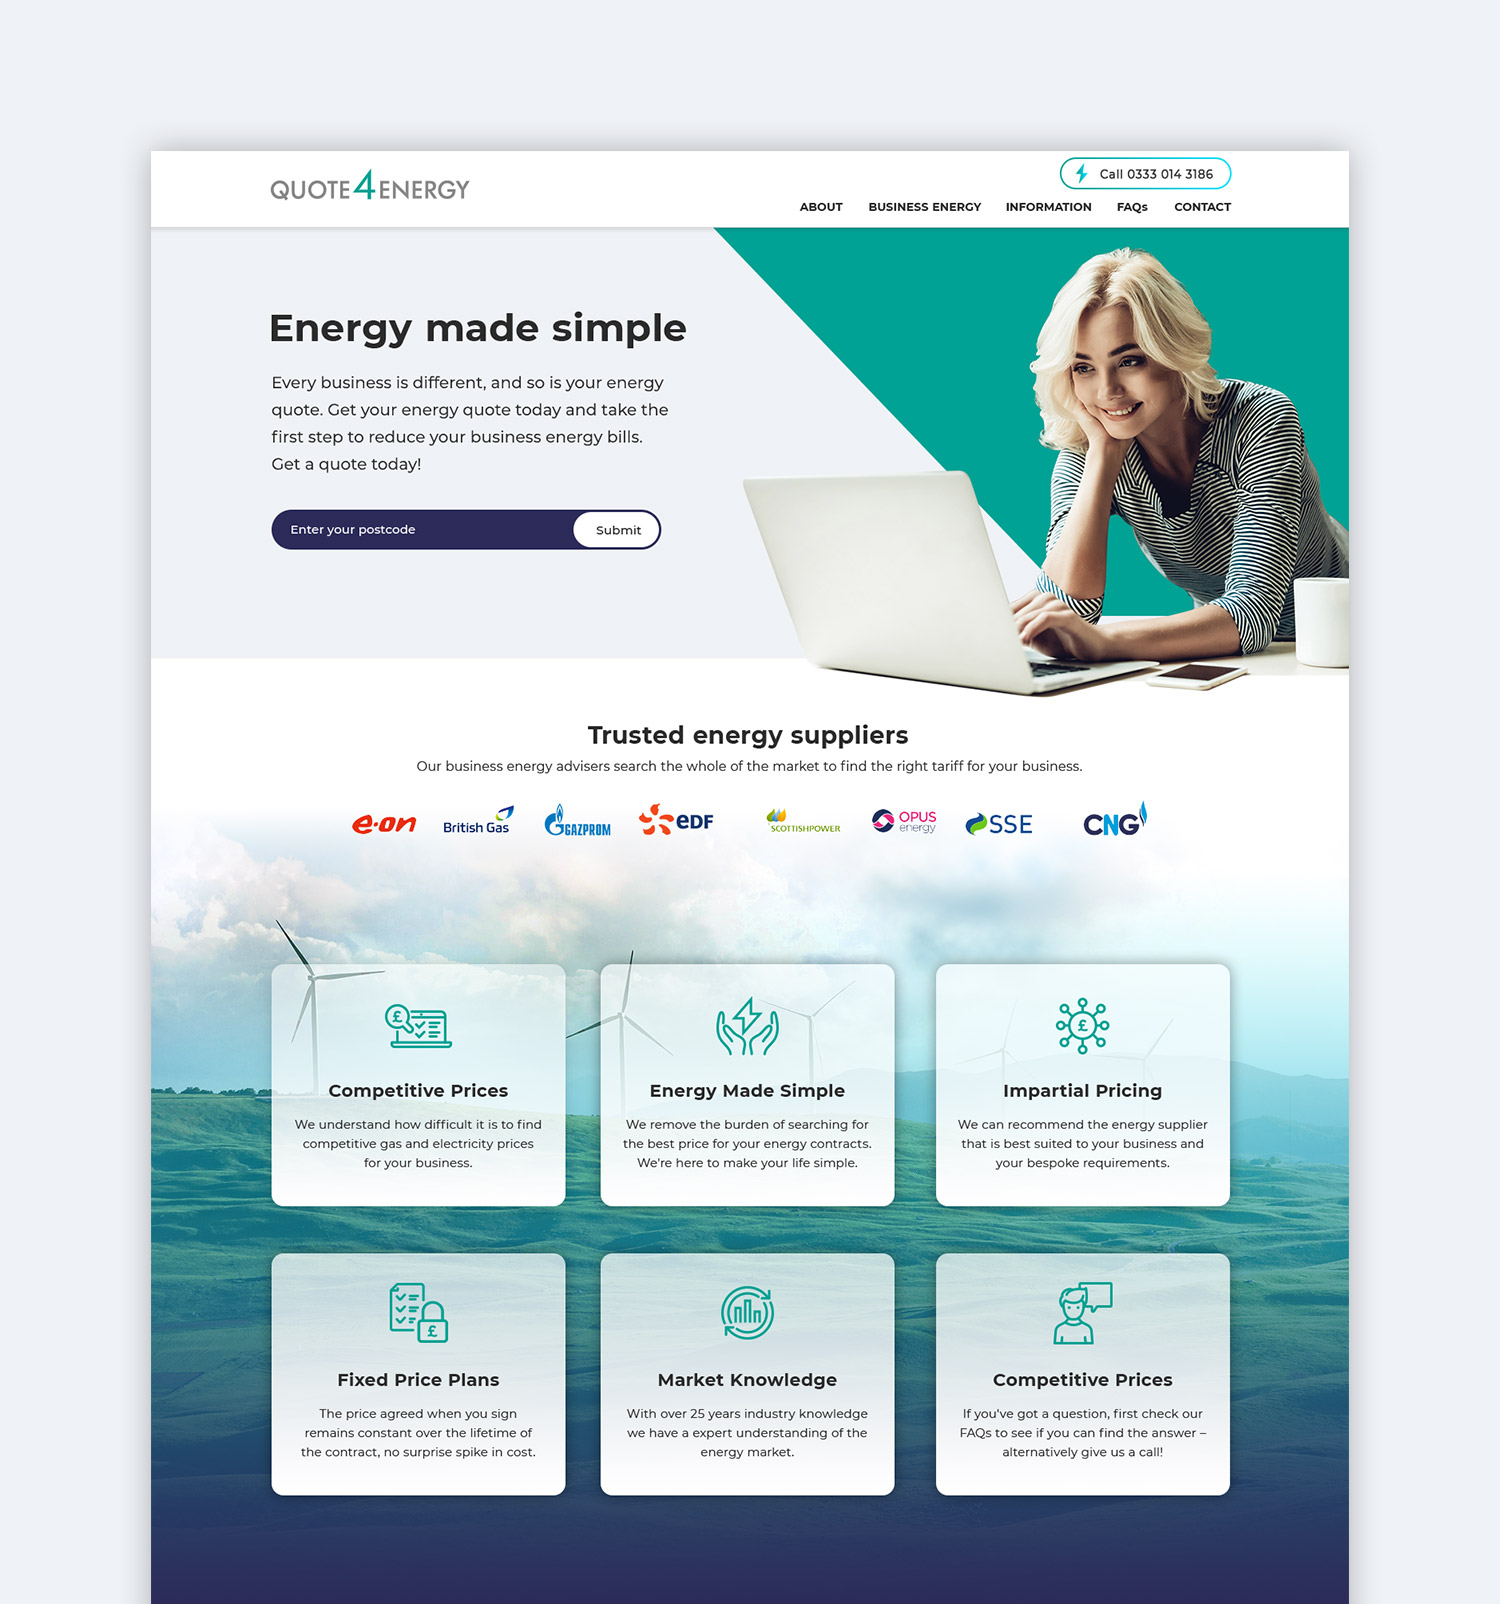 Quote4Energy full homepage website design